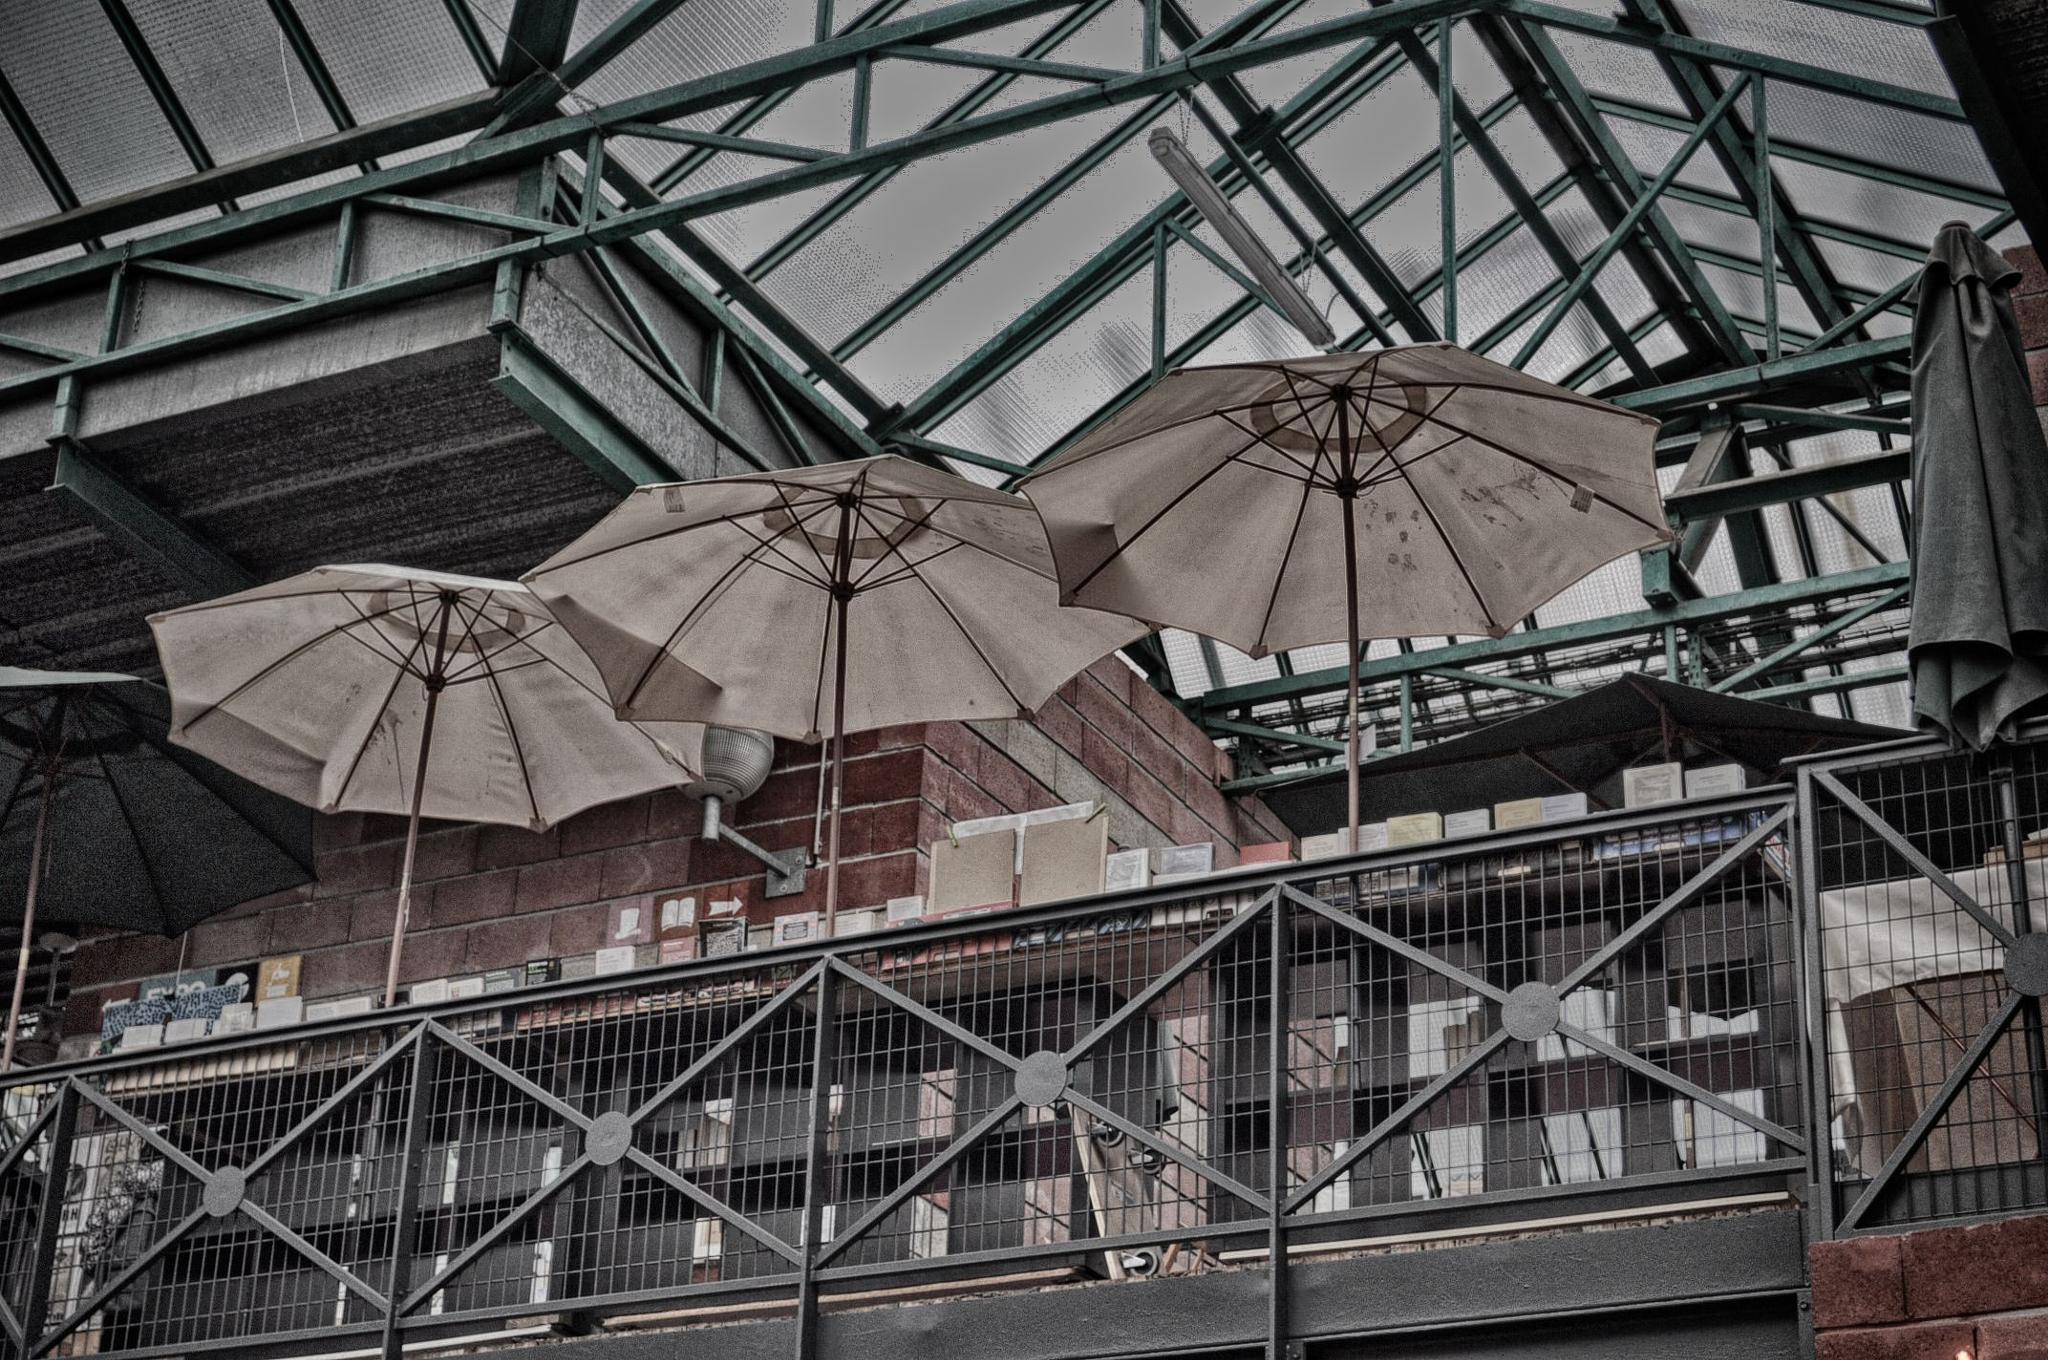 umbrellas, not by Christo by jean